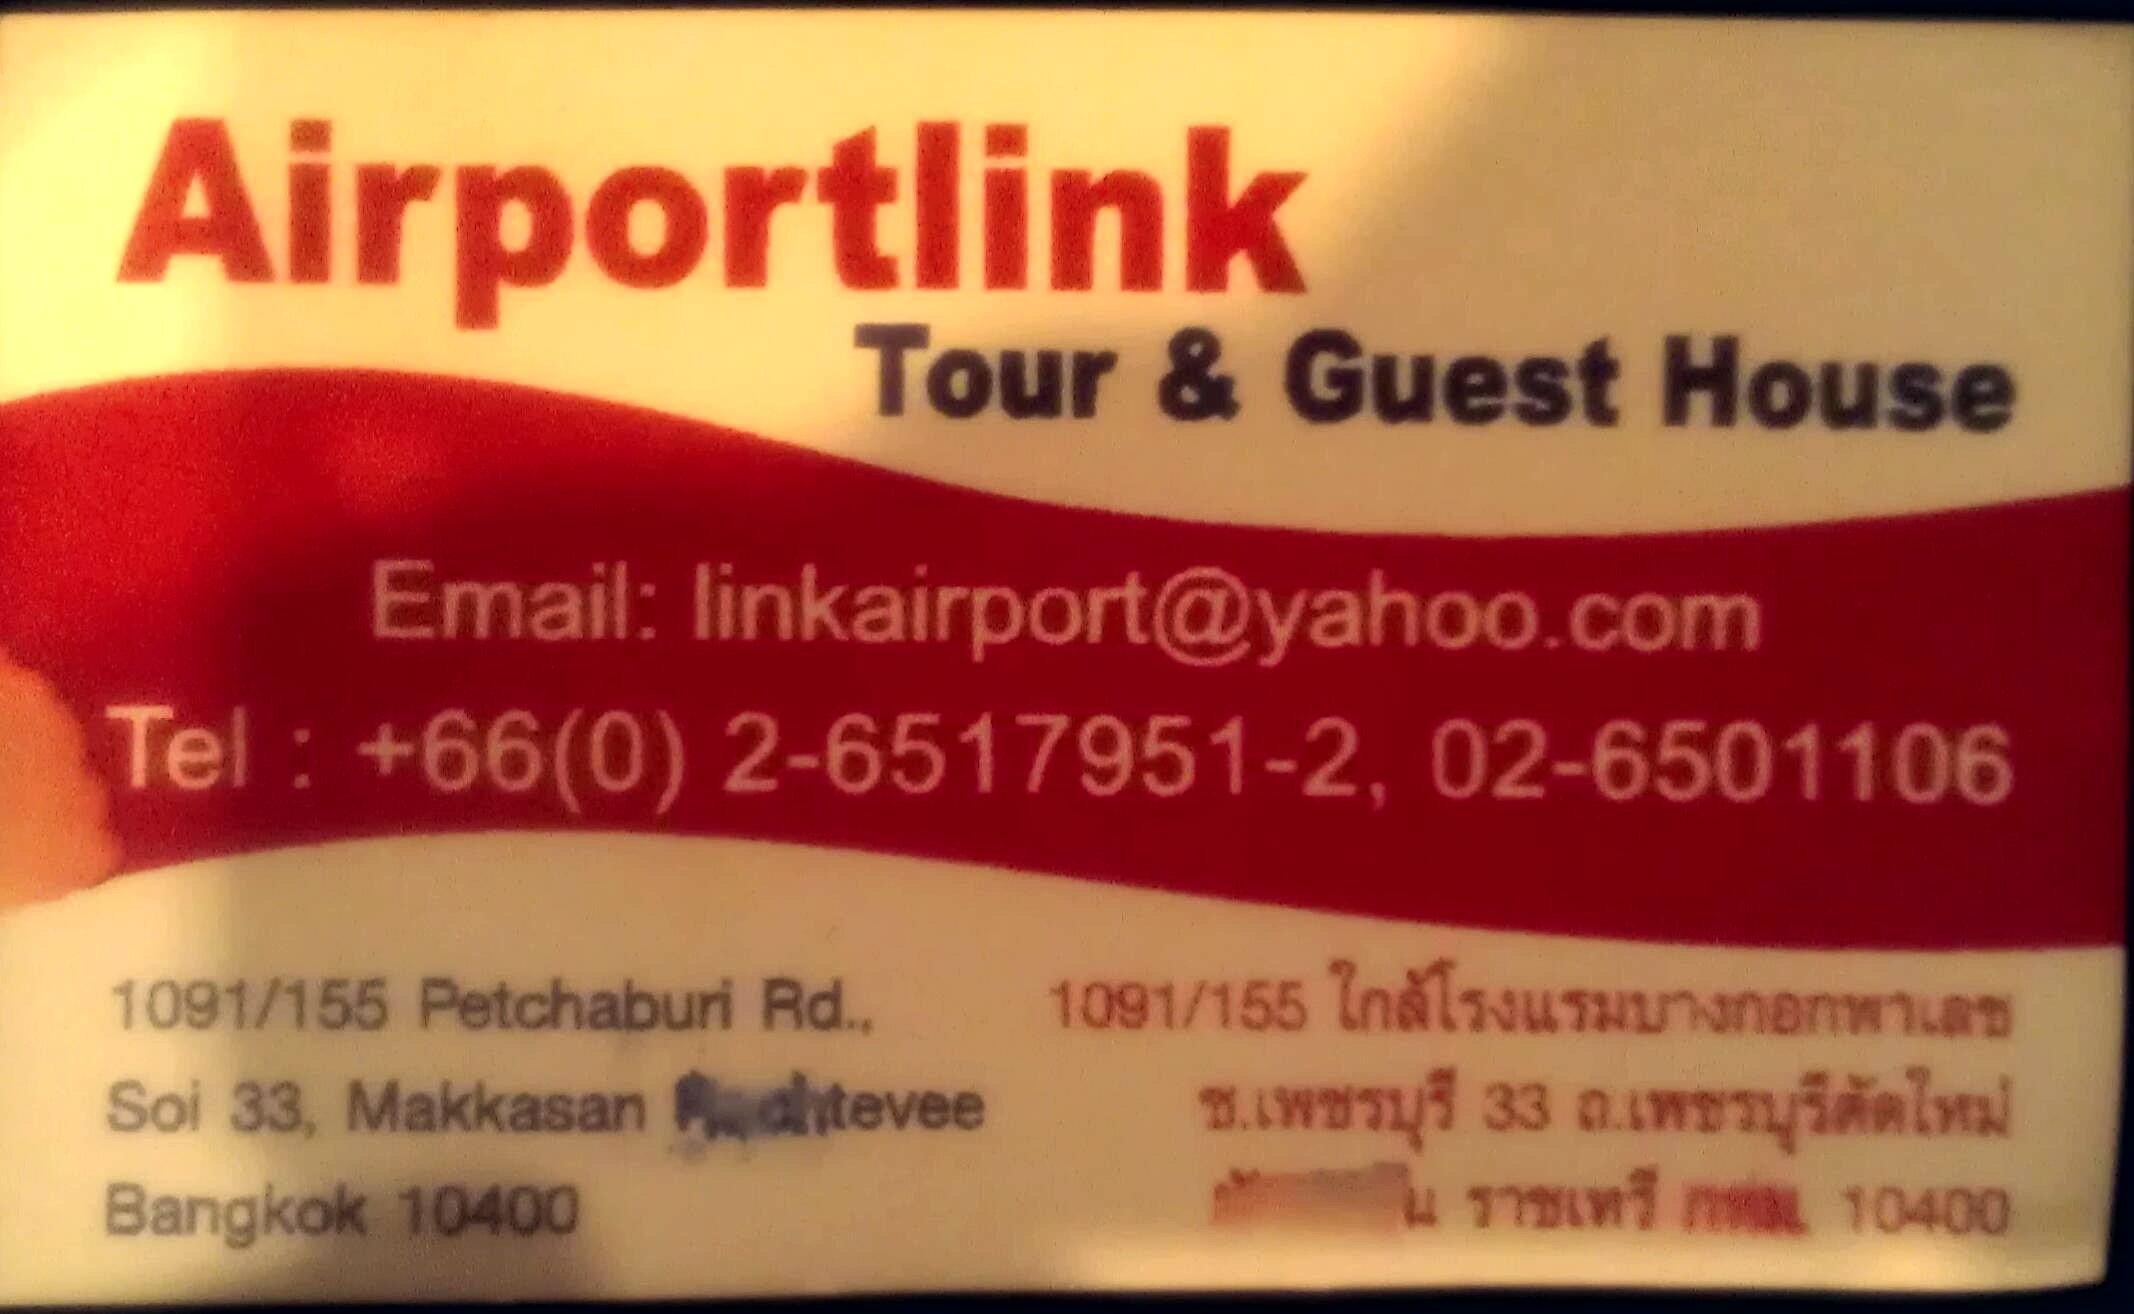 Airport Link Guesthouse